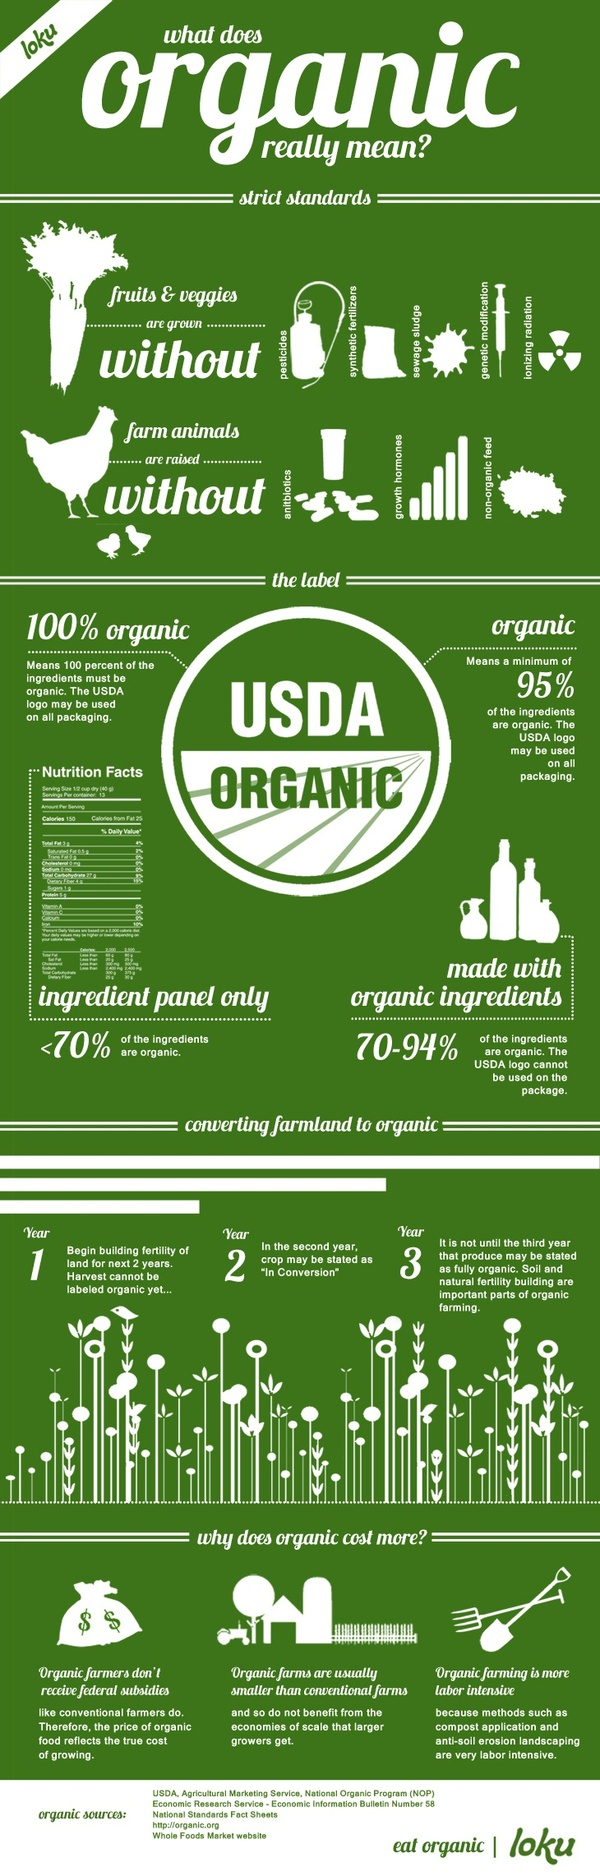 What Does Organic Really Mean? | Visual.ly